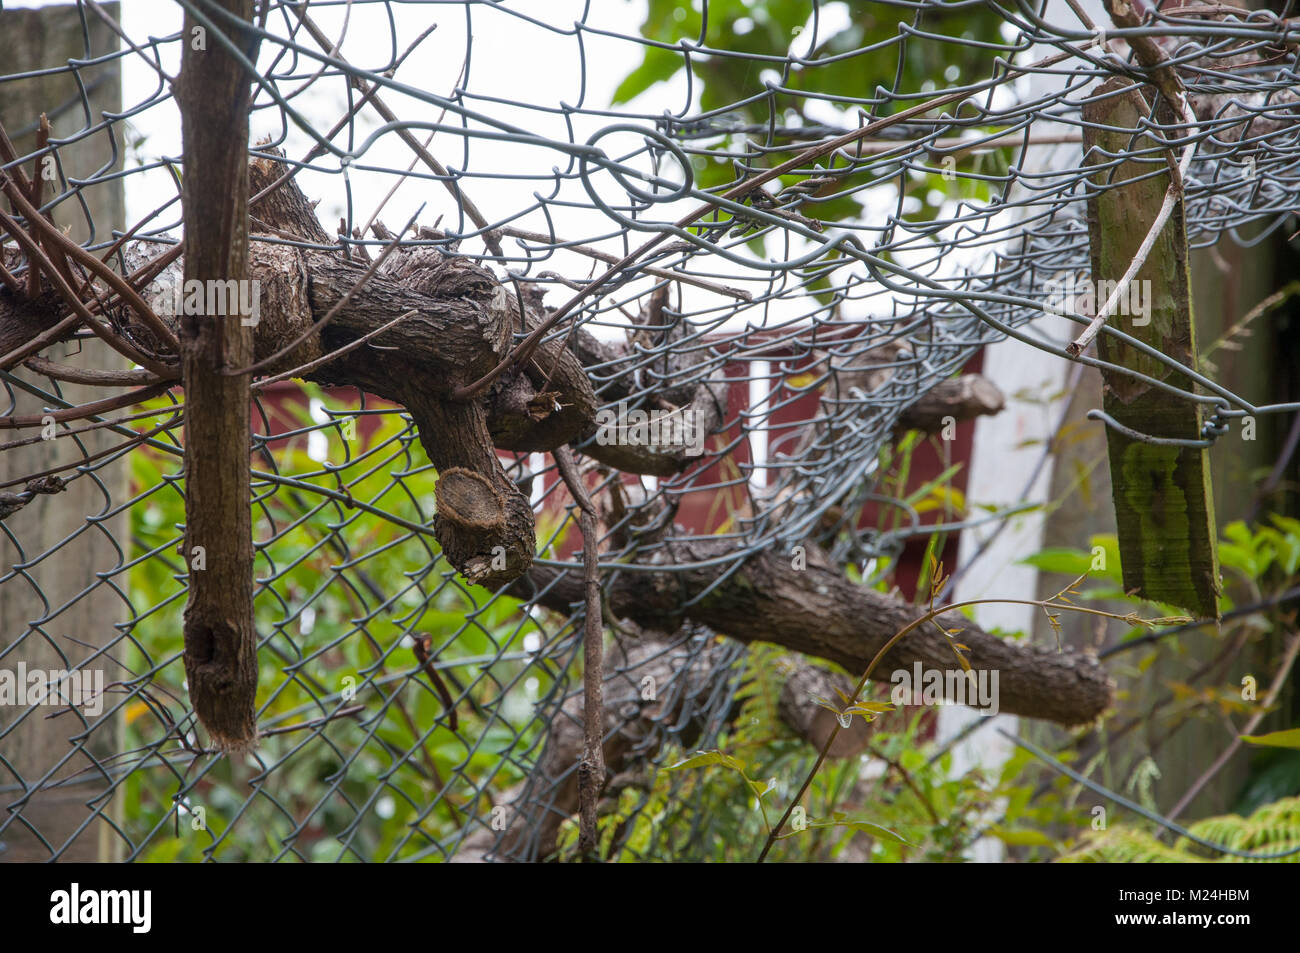 Tree Branches Tangled In A Wire Fence - Stock Image